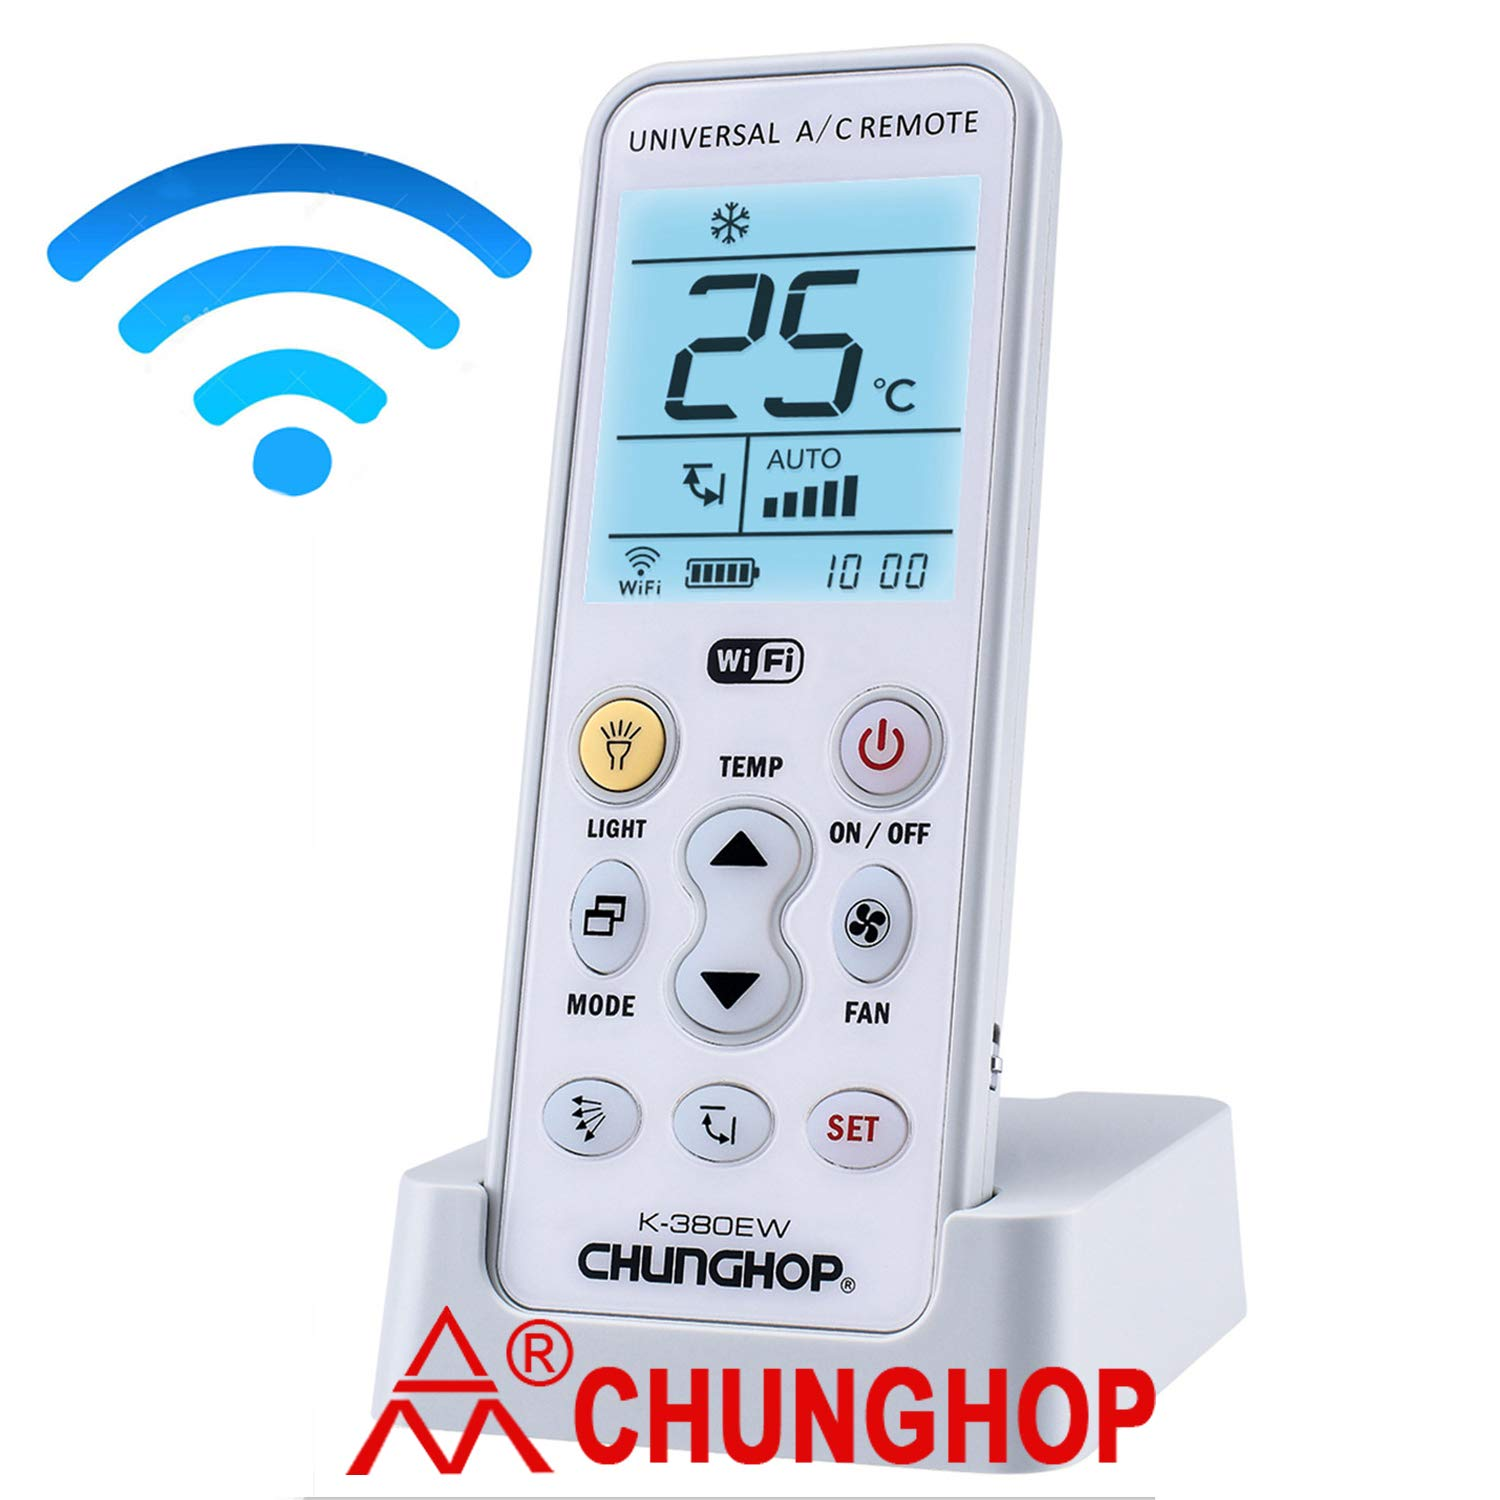 Chunghop WiFi Universal Air Conditioner Remote A/C Controller Air Conditioning Remote Control K-380EW not for Window A/C